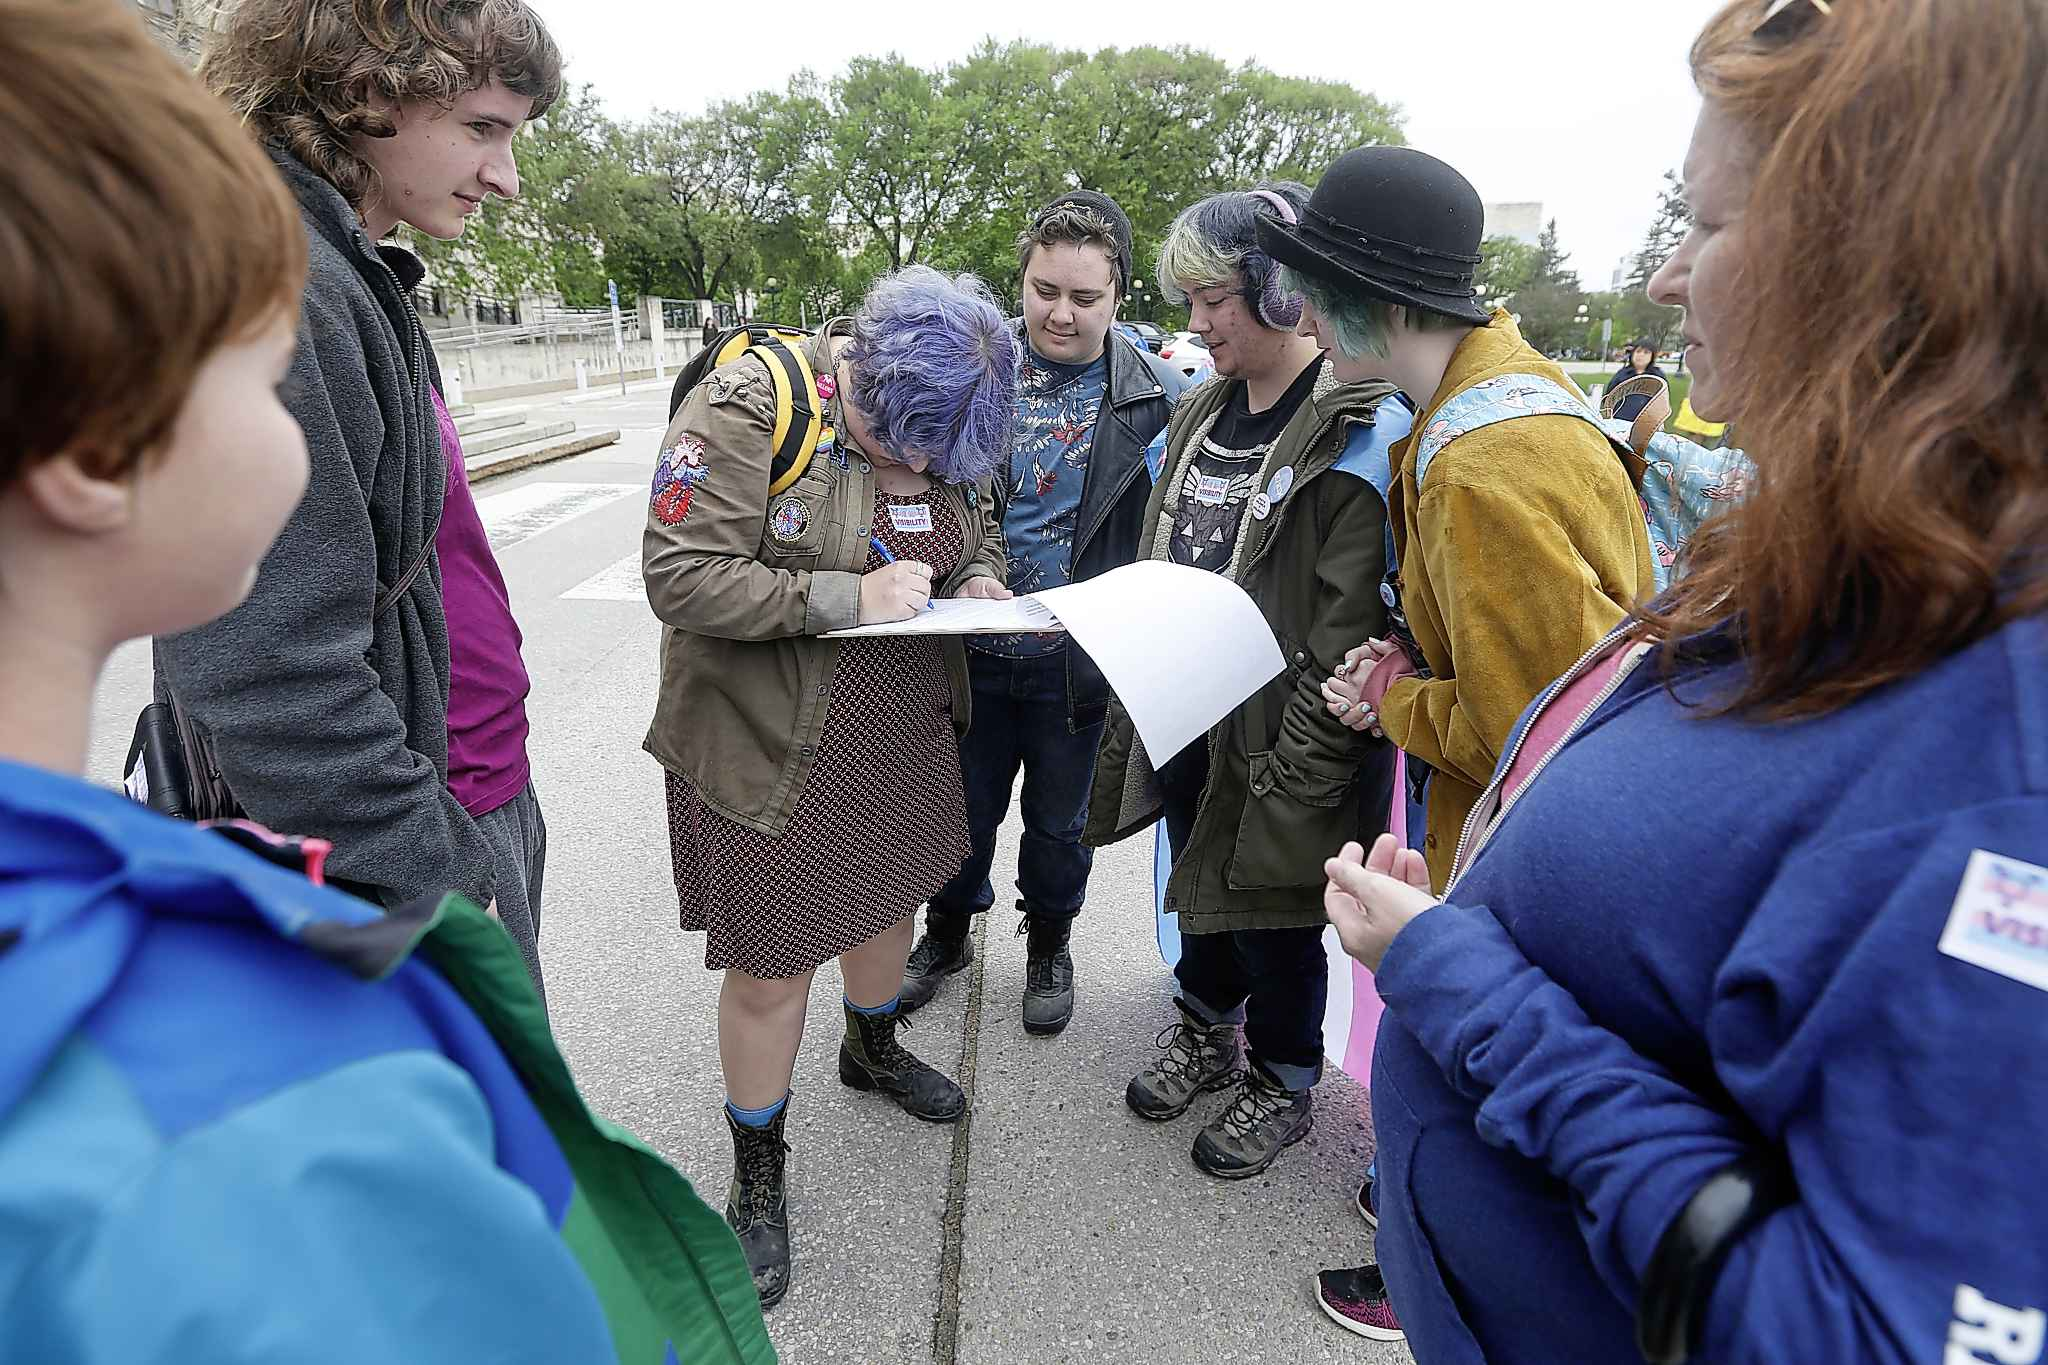 People sign petitions for gender-neutral identification at a transgender rally and march at the Manitoba legislature last summer. (John Woods / Winnipeg Free Press files)